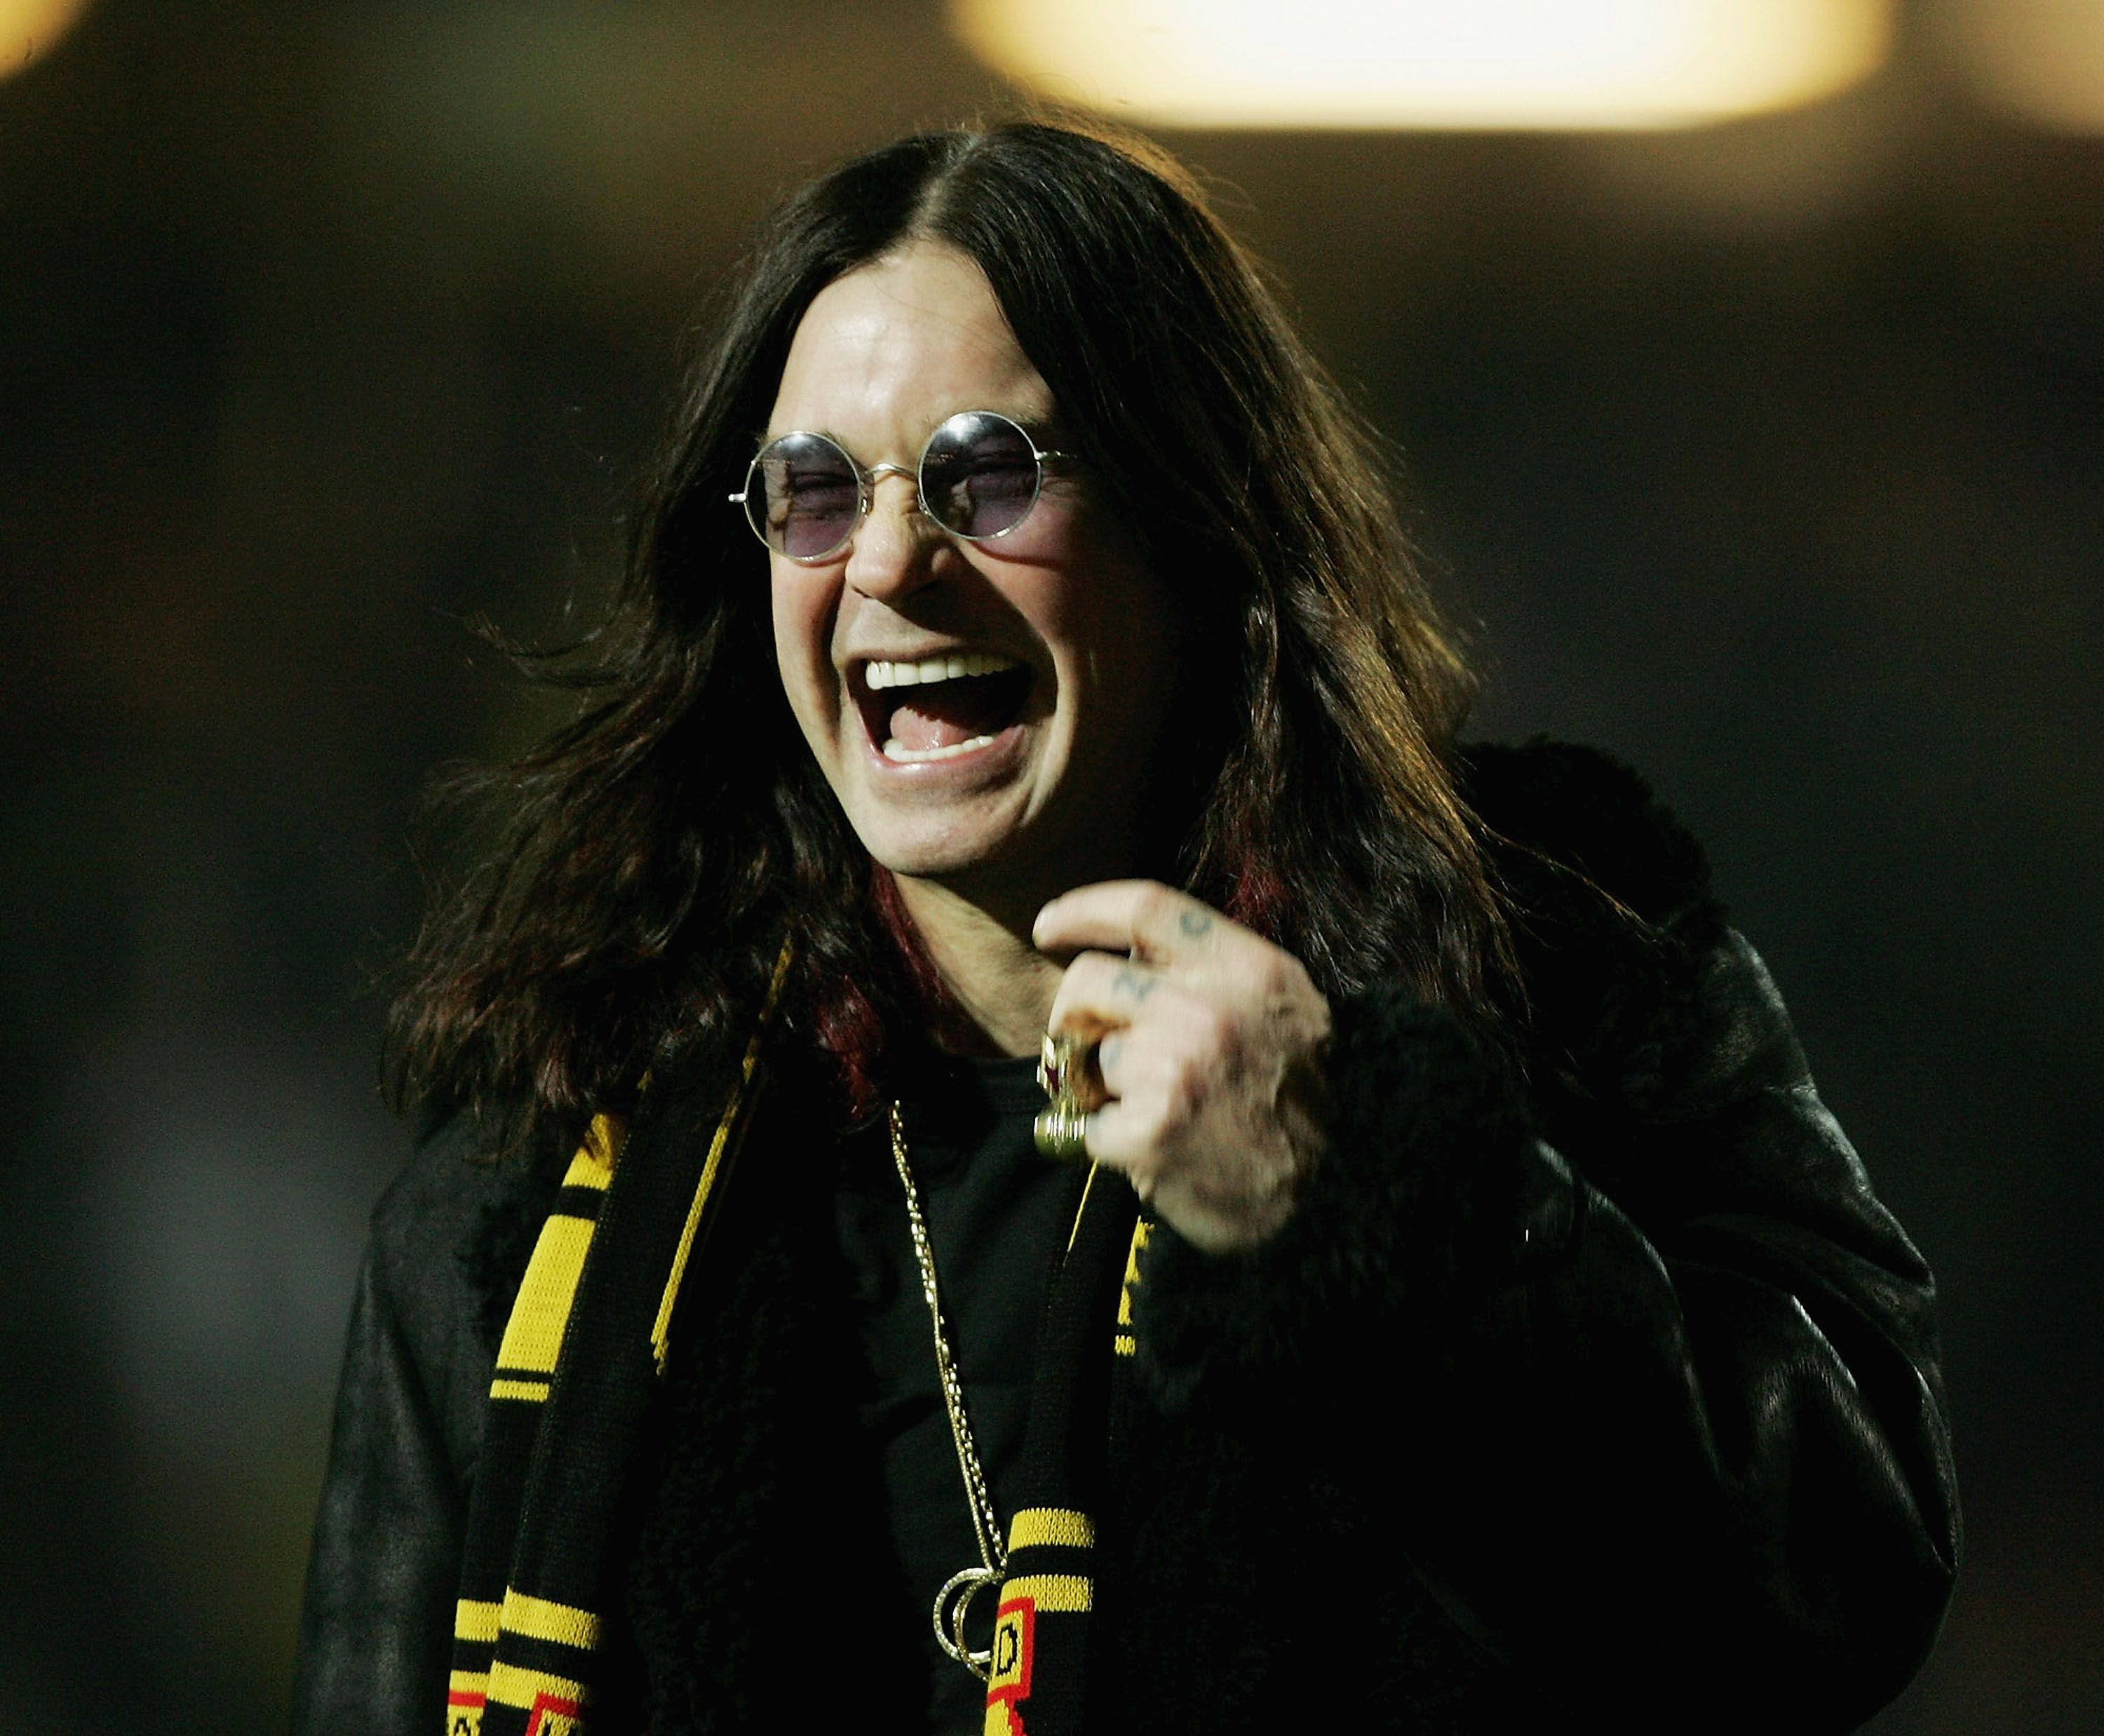 Ozzy Osbourne during the Carling Cup Quarter final match between Watford and Portsmouth at Vicarage Road on November 30, 2004 in Watford, England. | Source: Getty Images